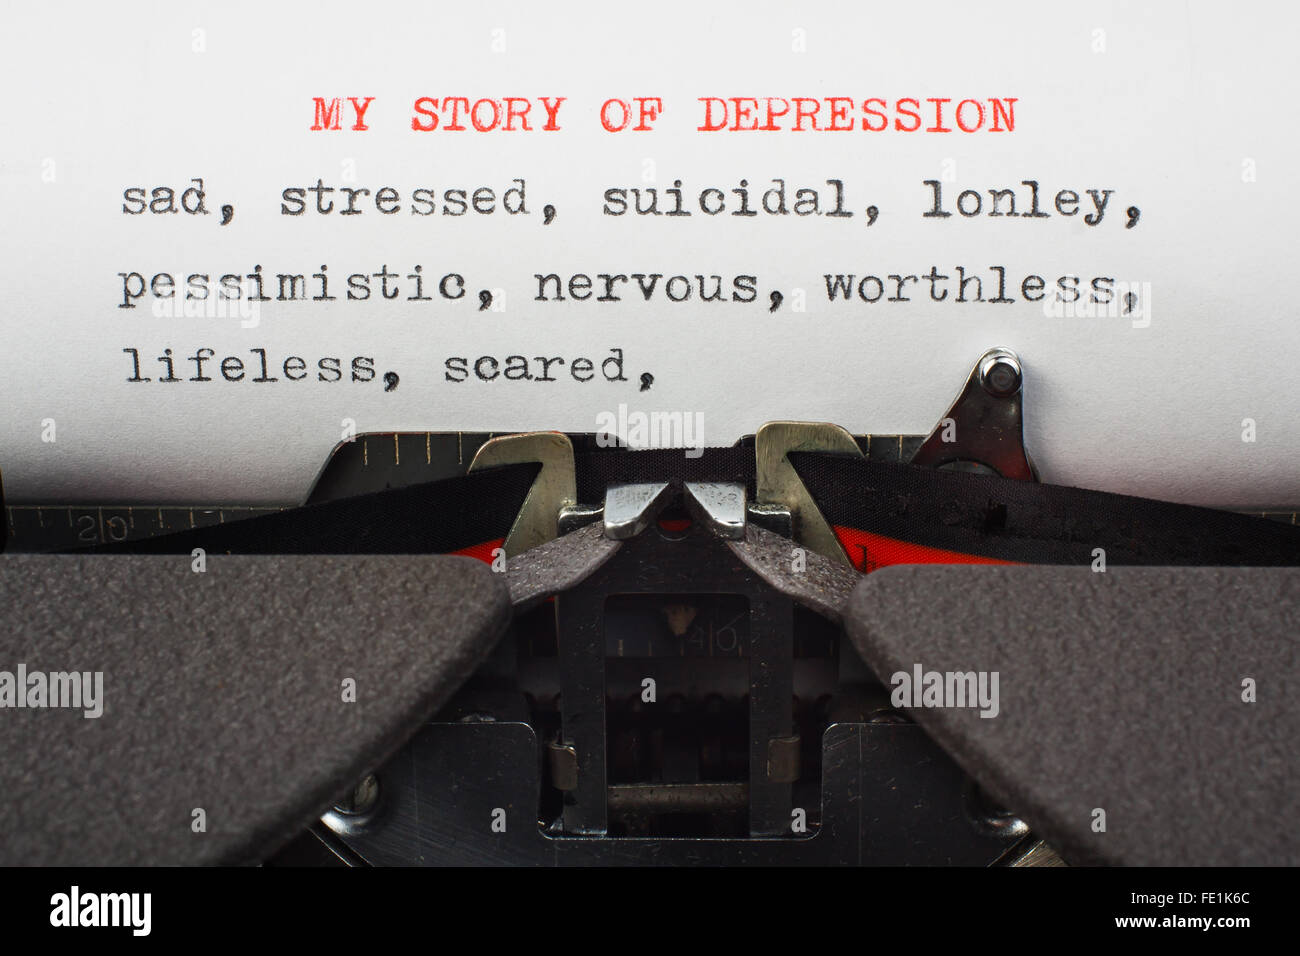 'My story of depression' written on a typewriter - Stock Image